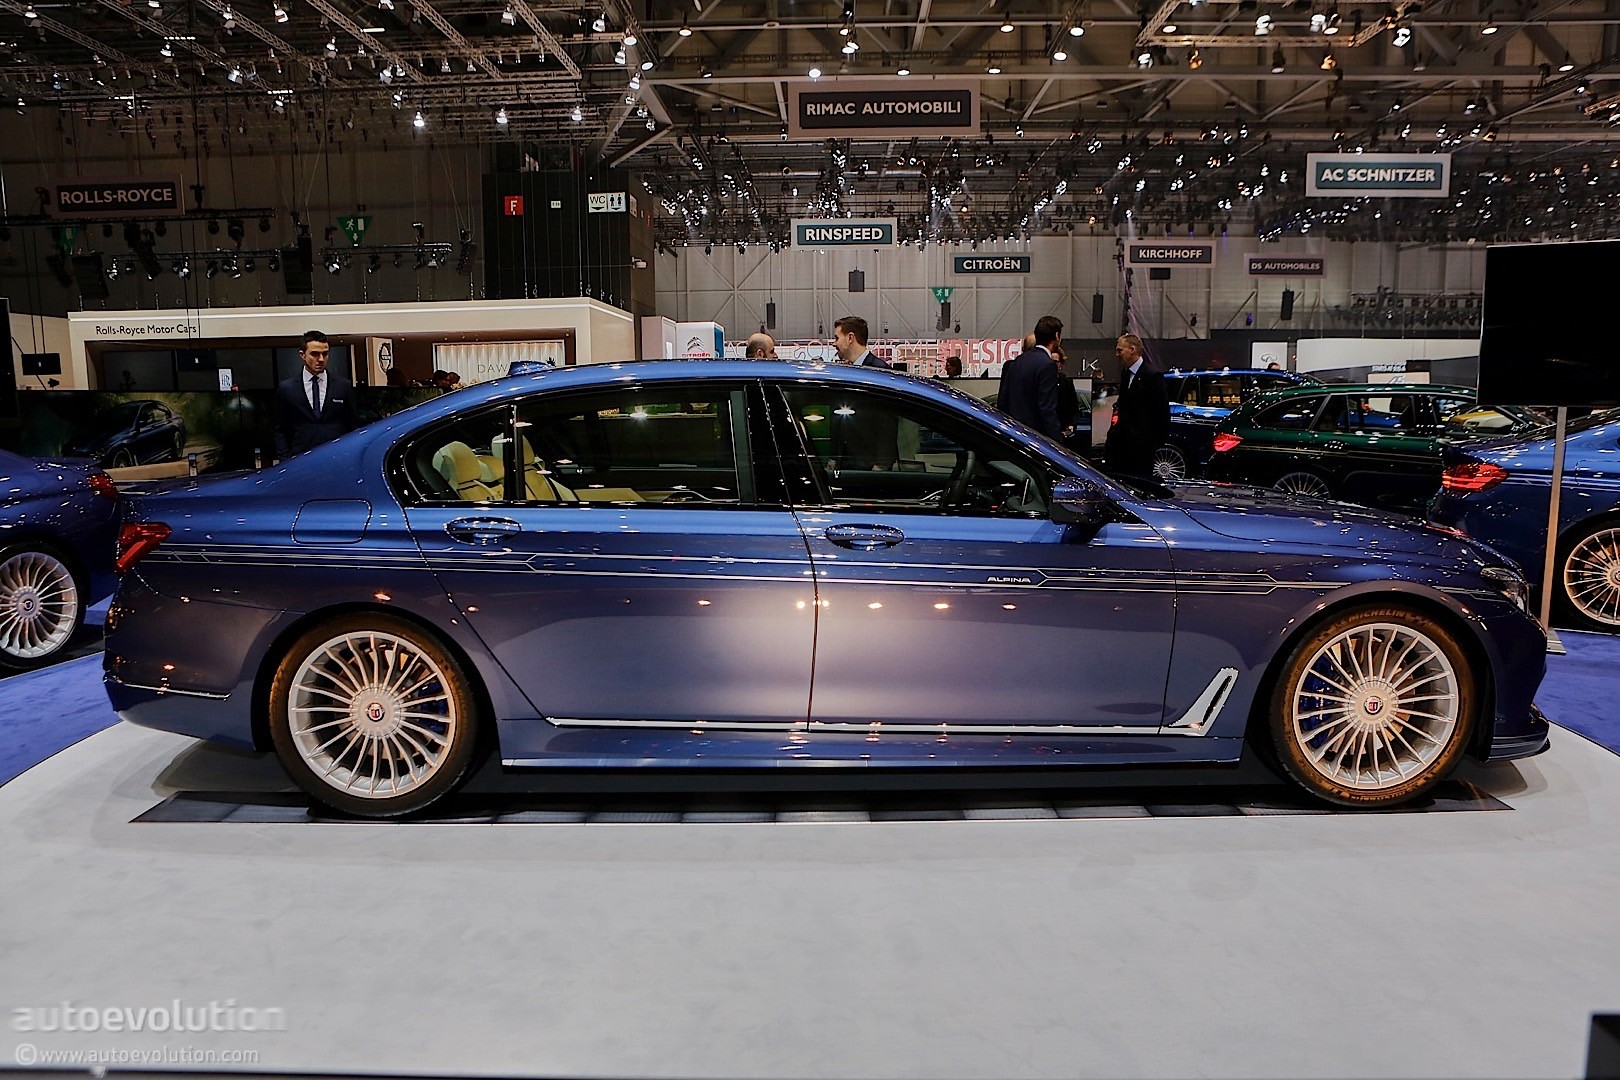 2016 Alpina B7 BiTurbo to Make UK Debut at 2016 Goodwood Festival